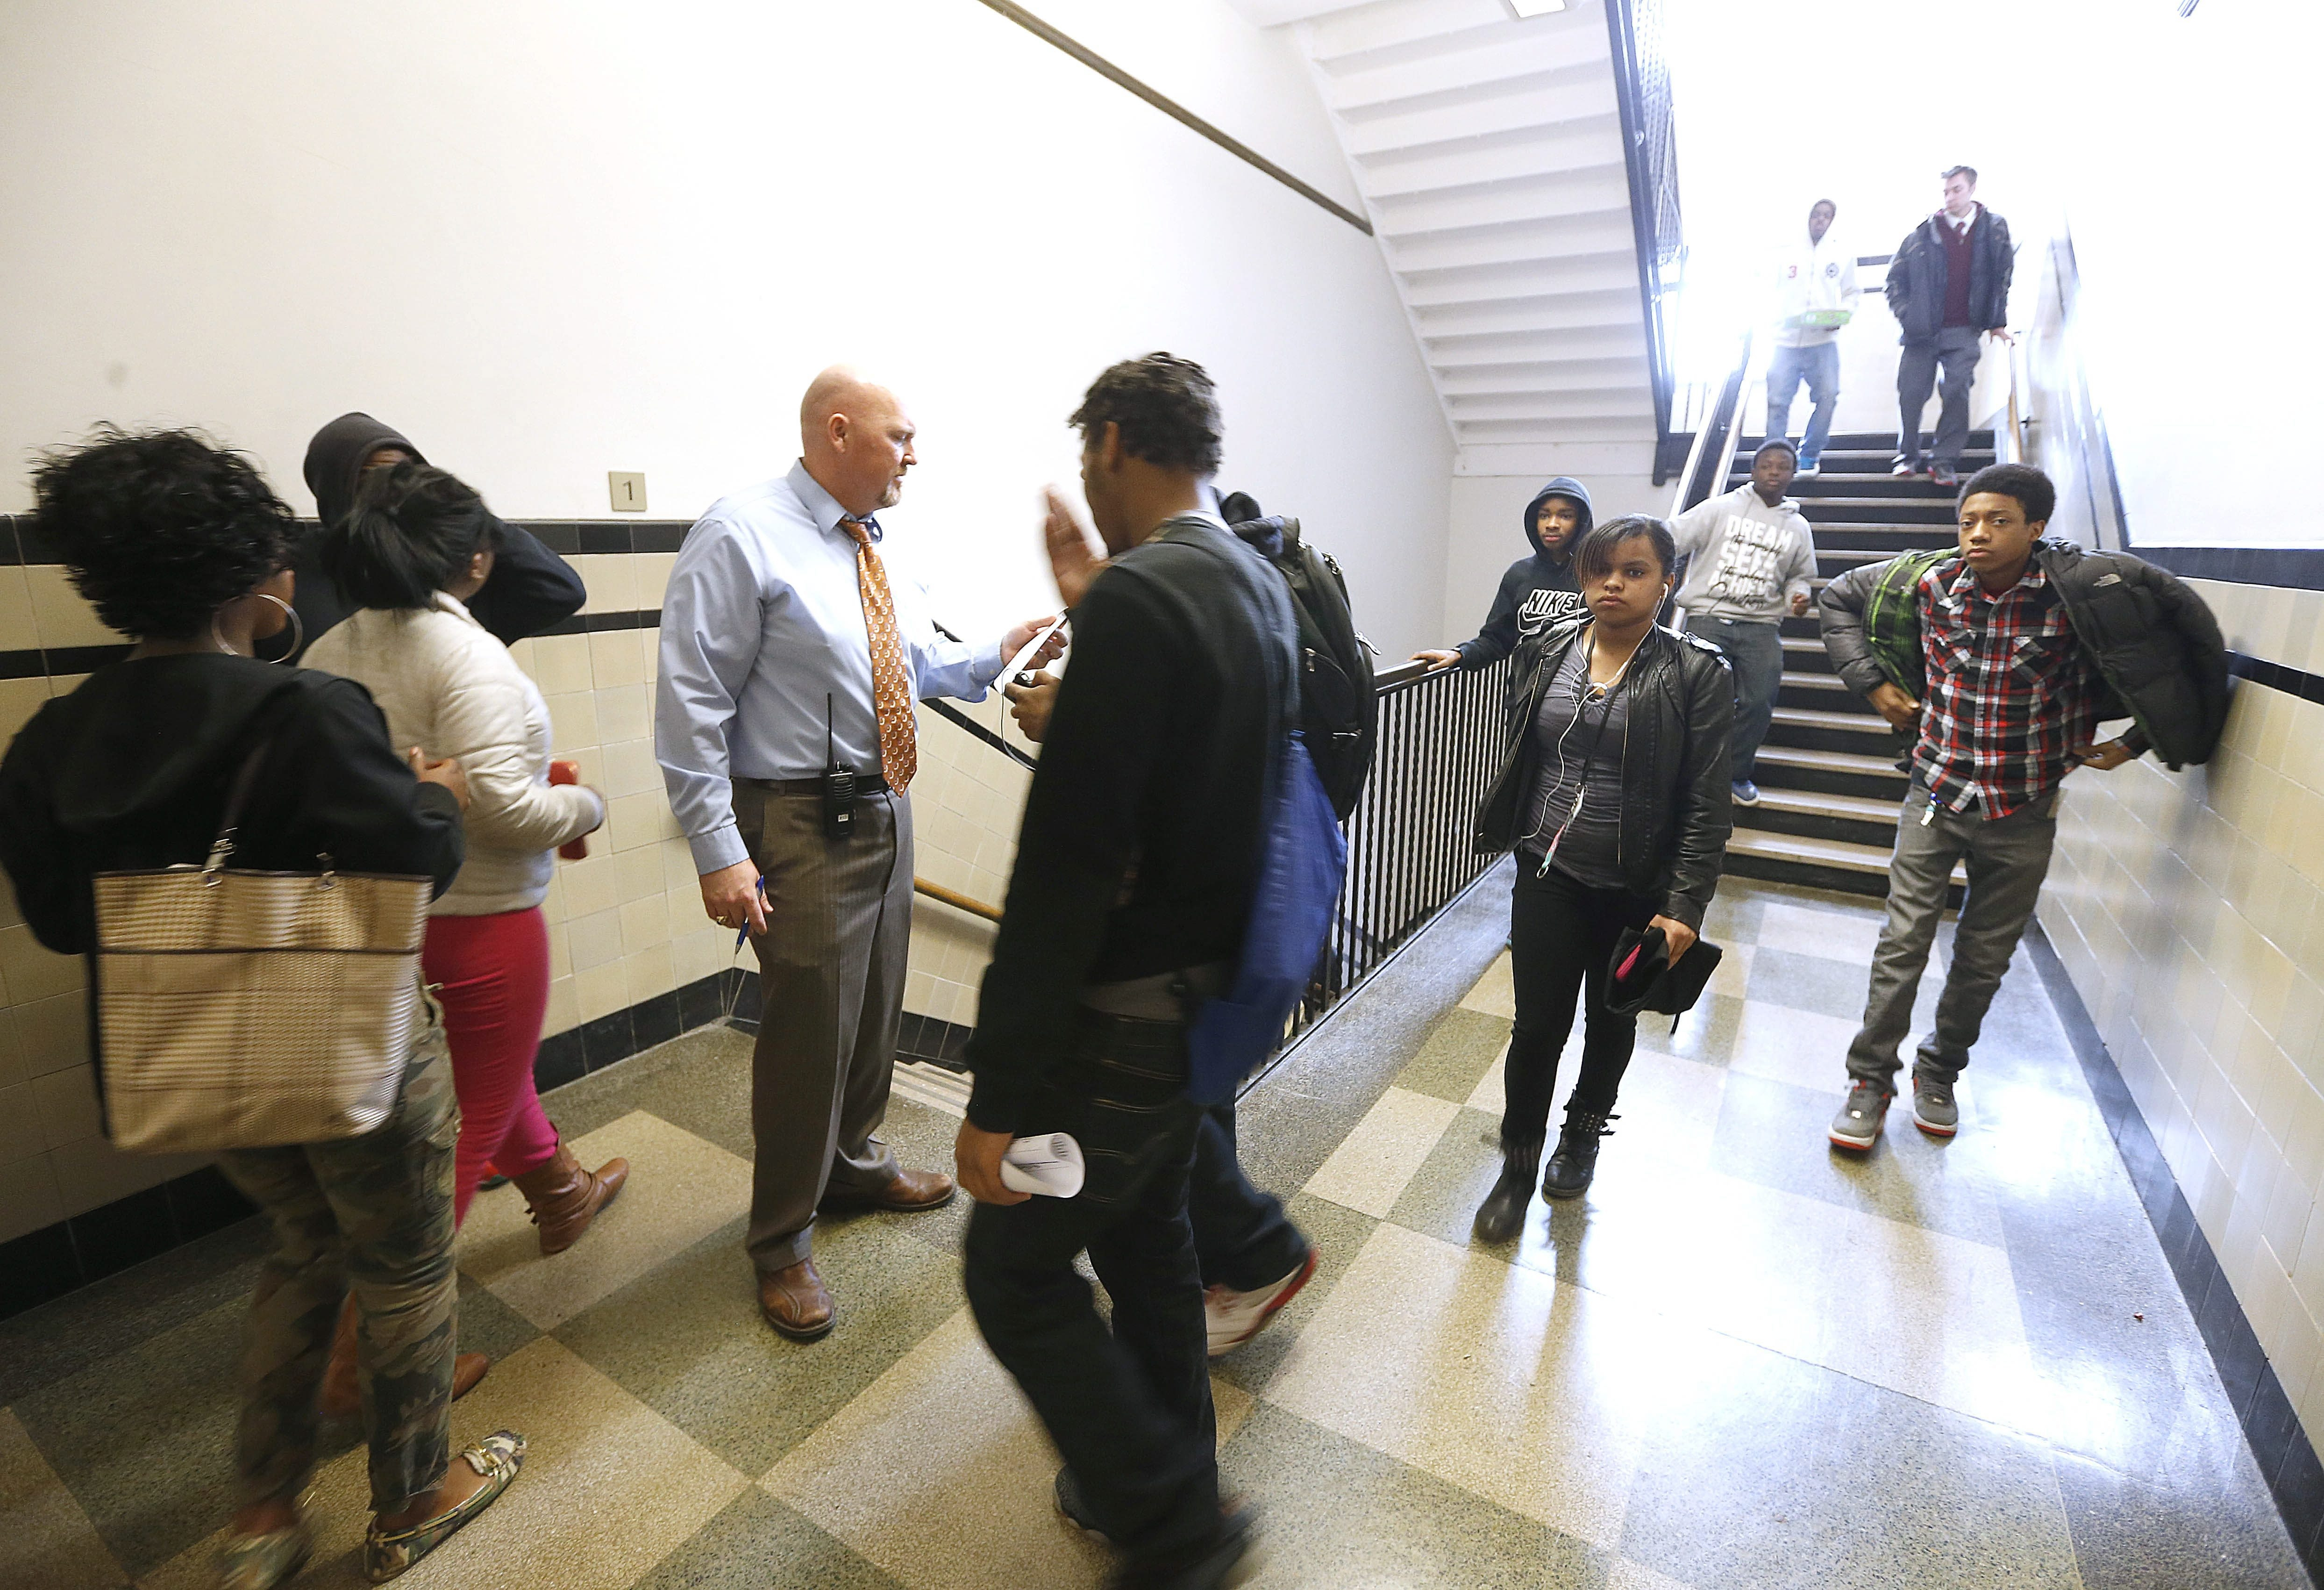 Principal Casey Young visits with students at the end of the school day at East High School in this 2014 photo.